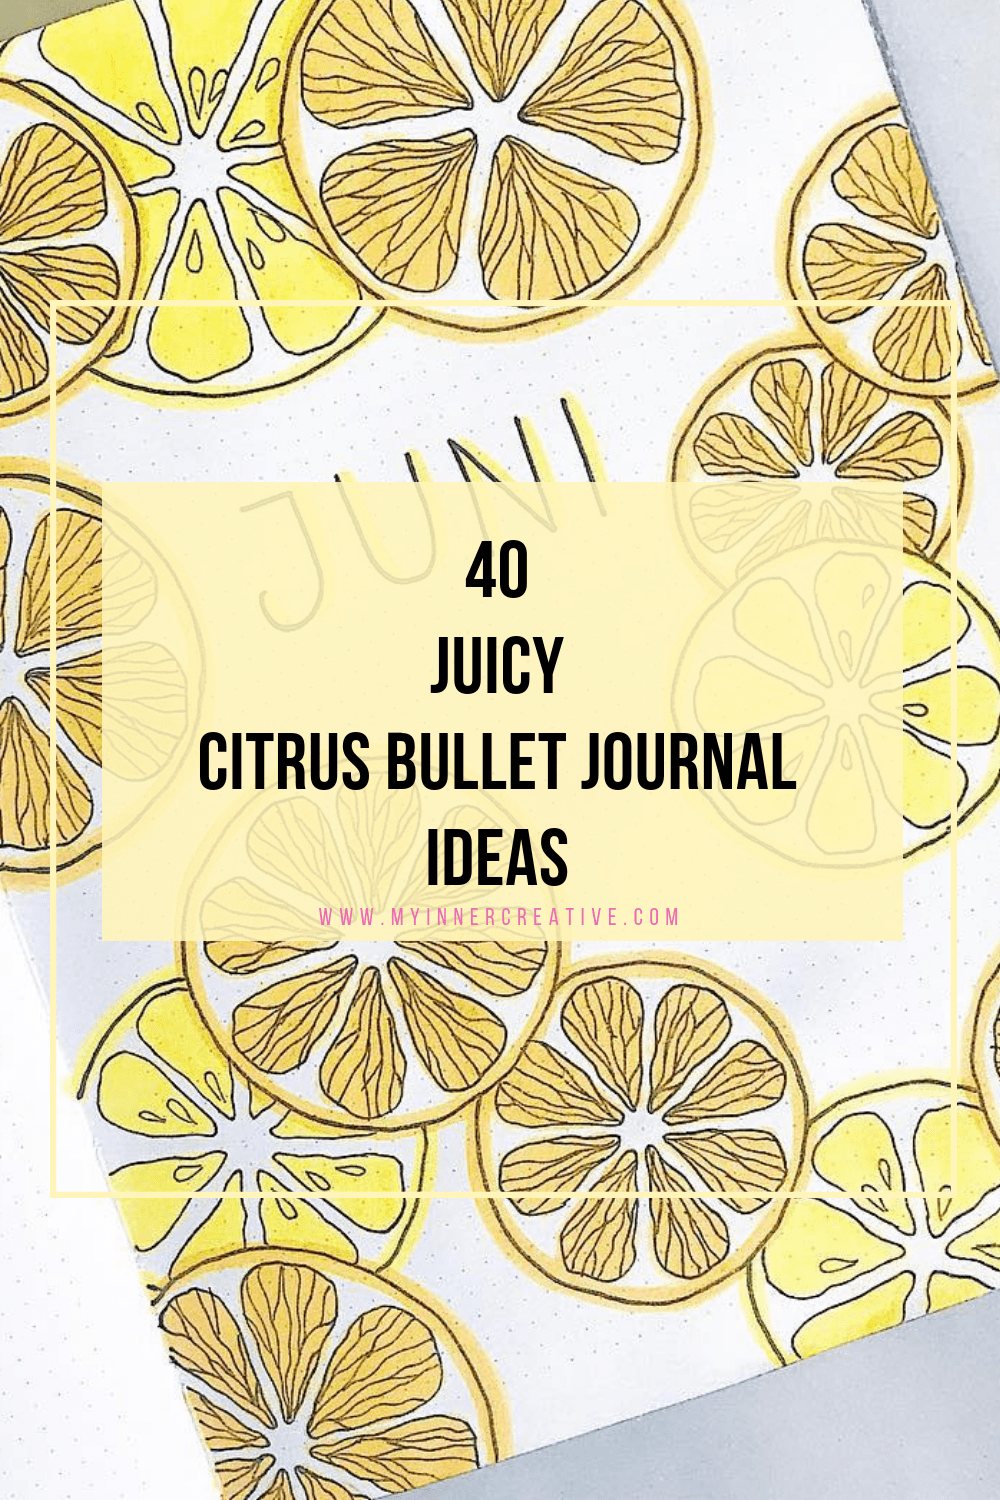 40 juicy Citrus Bullet Journal Theme Ideas